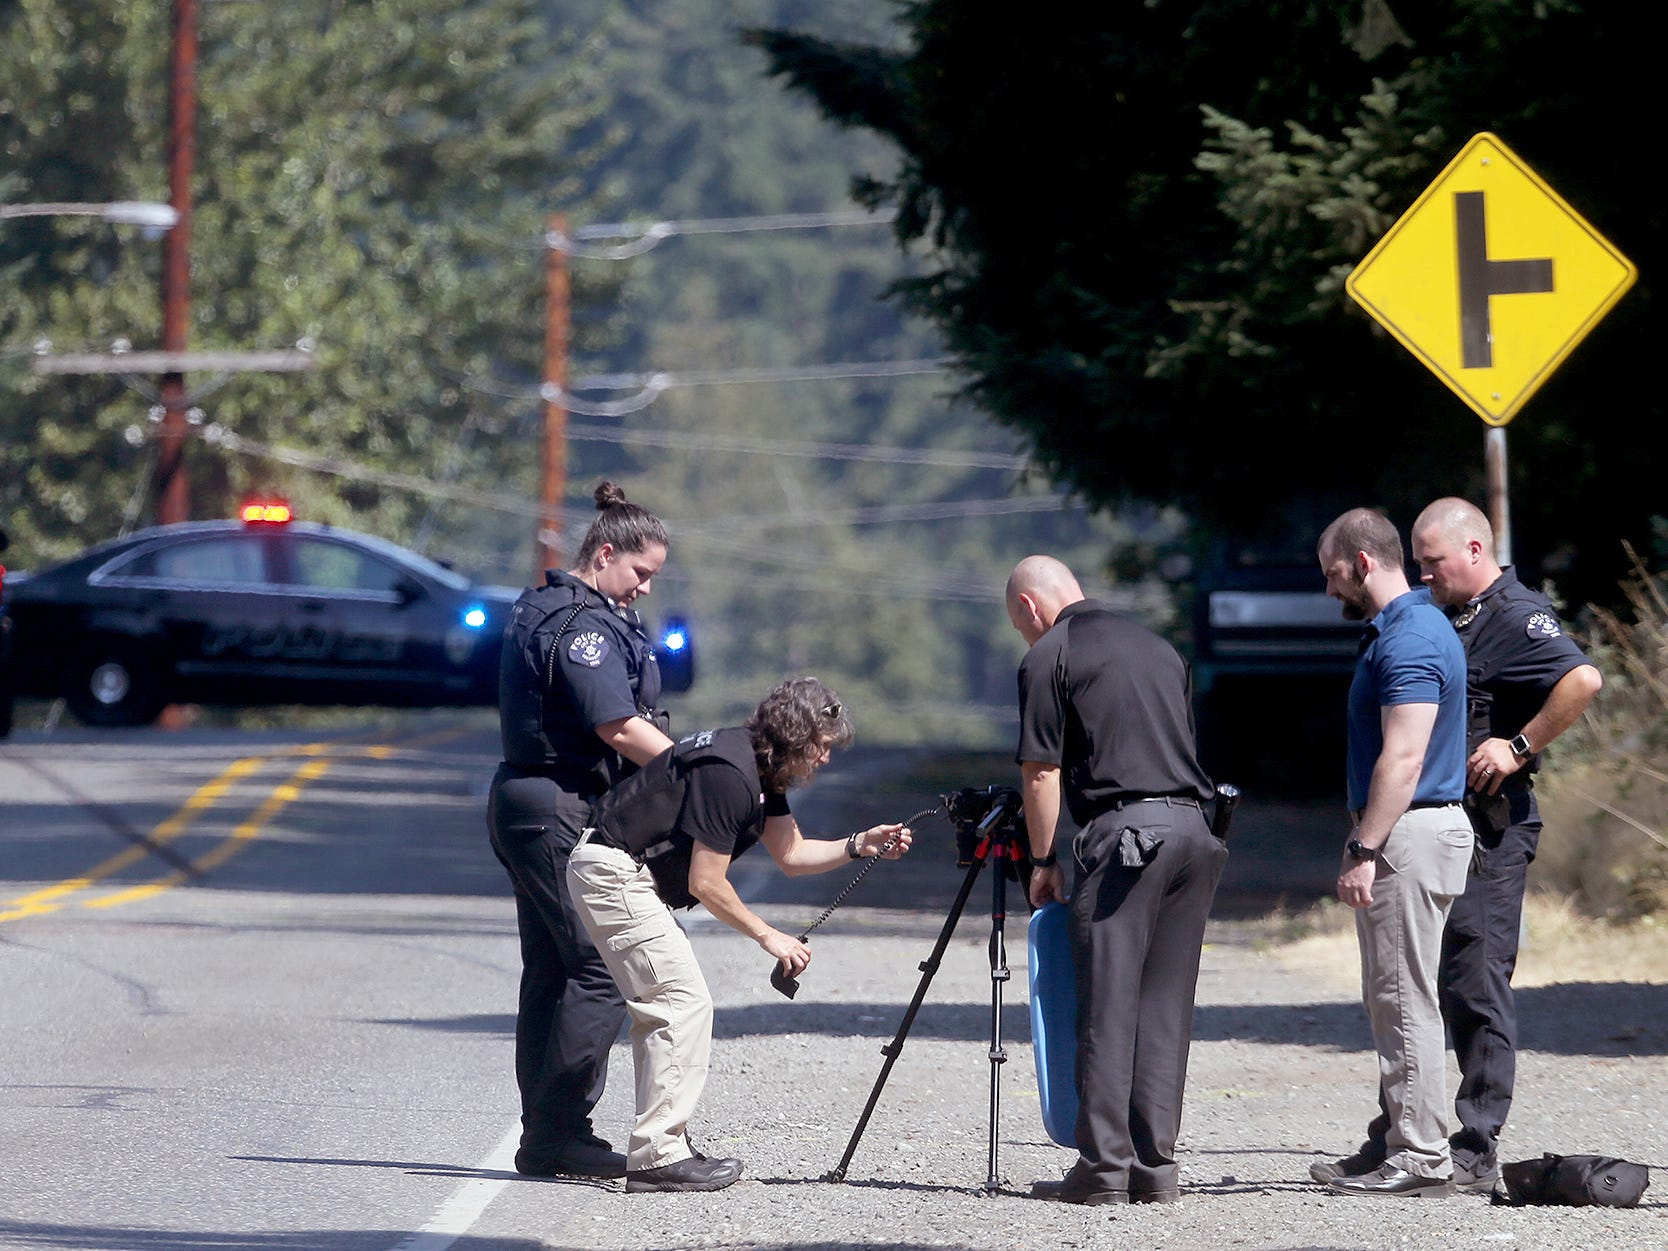 Bremerton Police Department investigators work the scene of a fatality pedestrian accident on National Ave. in Bremerton on Thursday.